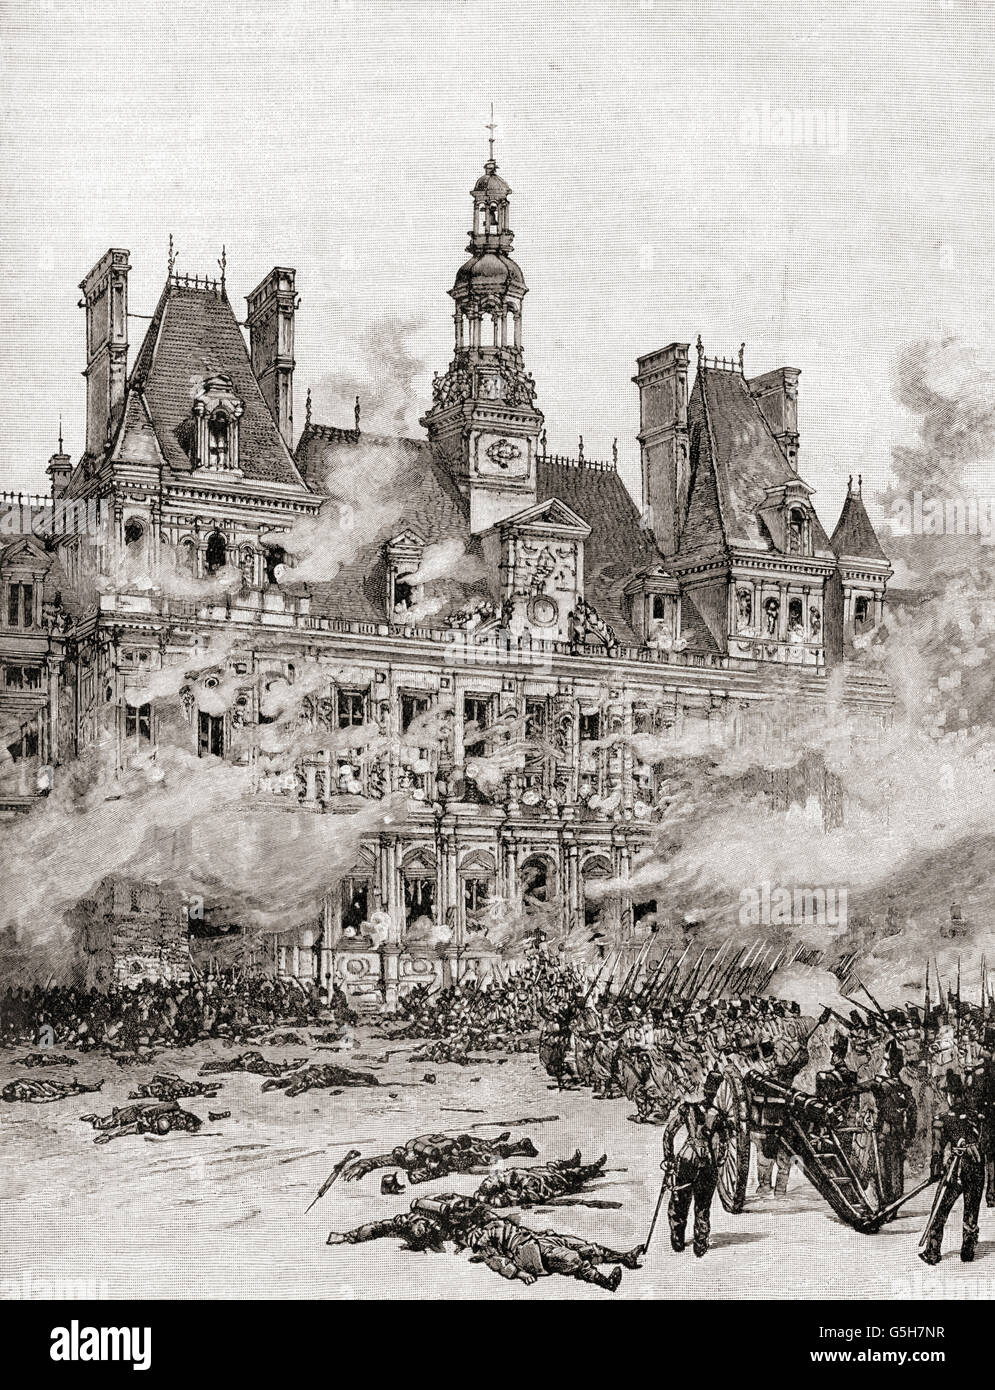 Revolutionaries capture the Hôtel de Ville, Paris, France during the French Revolution of 1830. - Stock Image